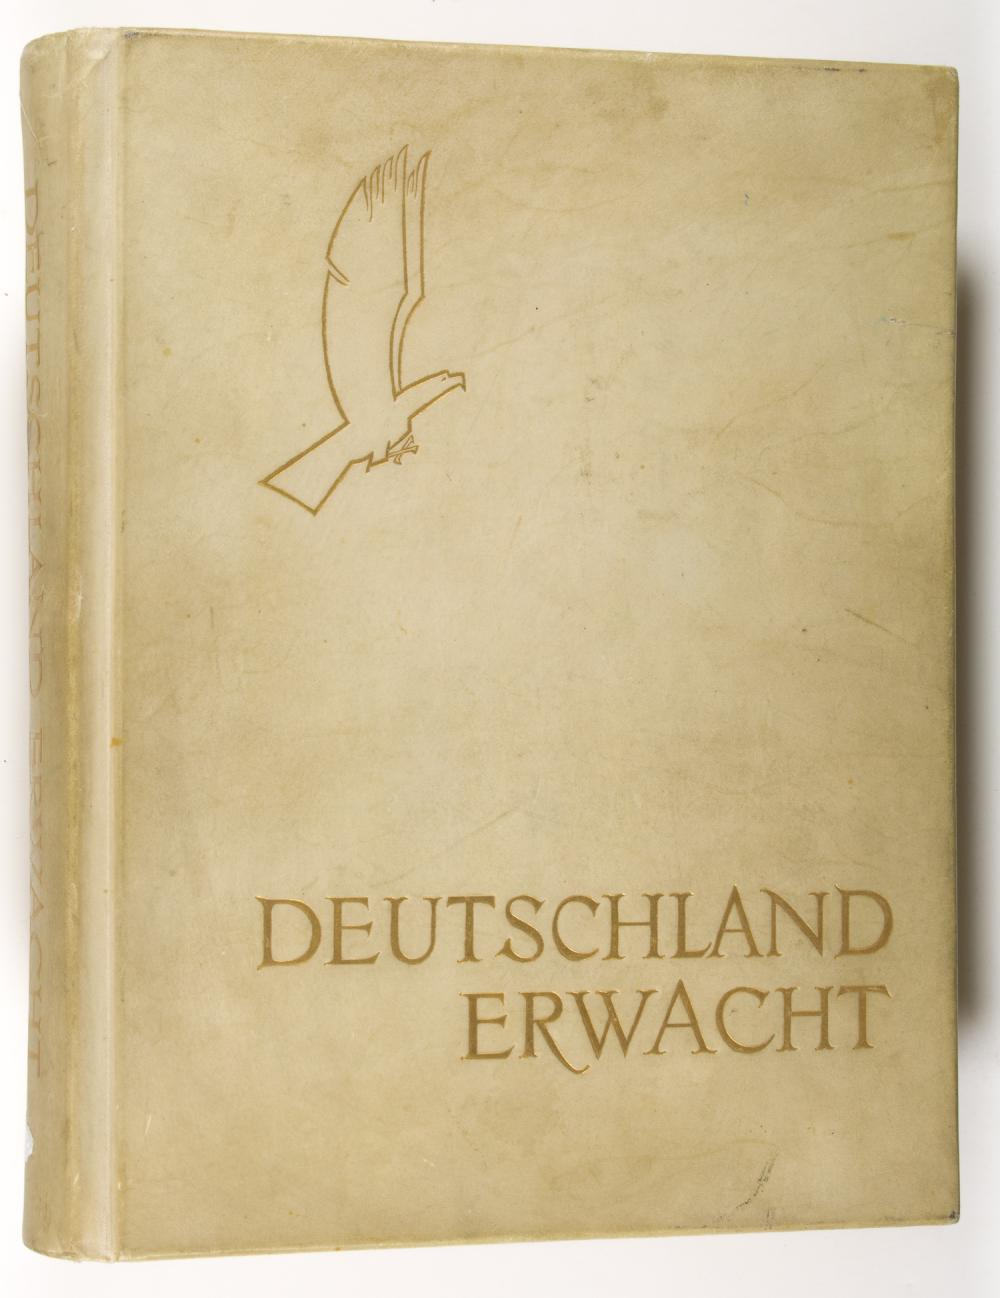 CIGARETTE ALBUM FROM THE LIBRARY OF HIMMLER'S LIAISON OFFICER, KARL WOLFF